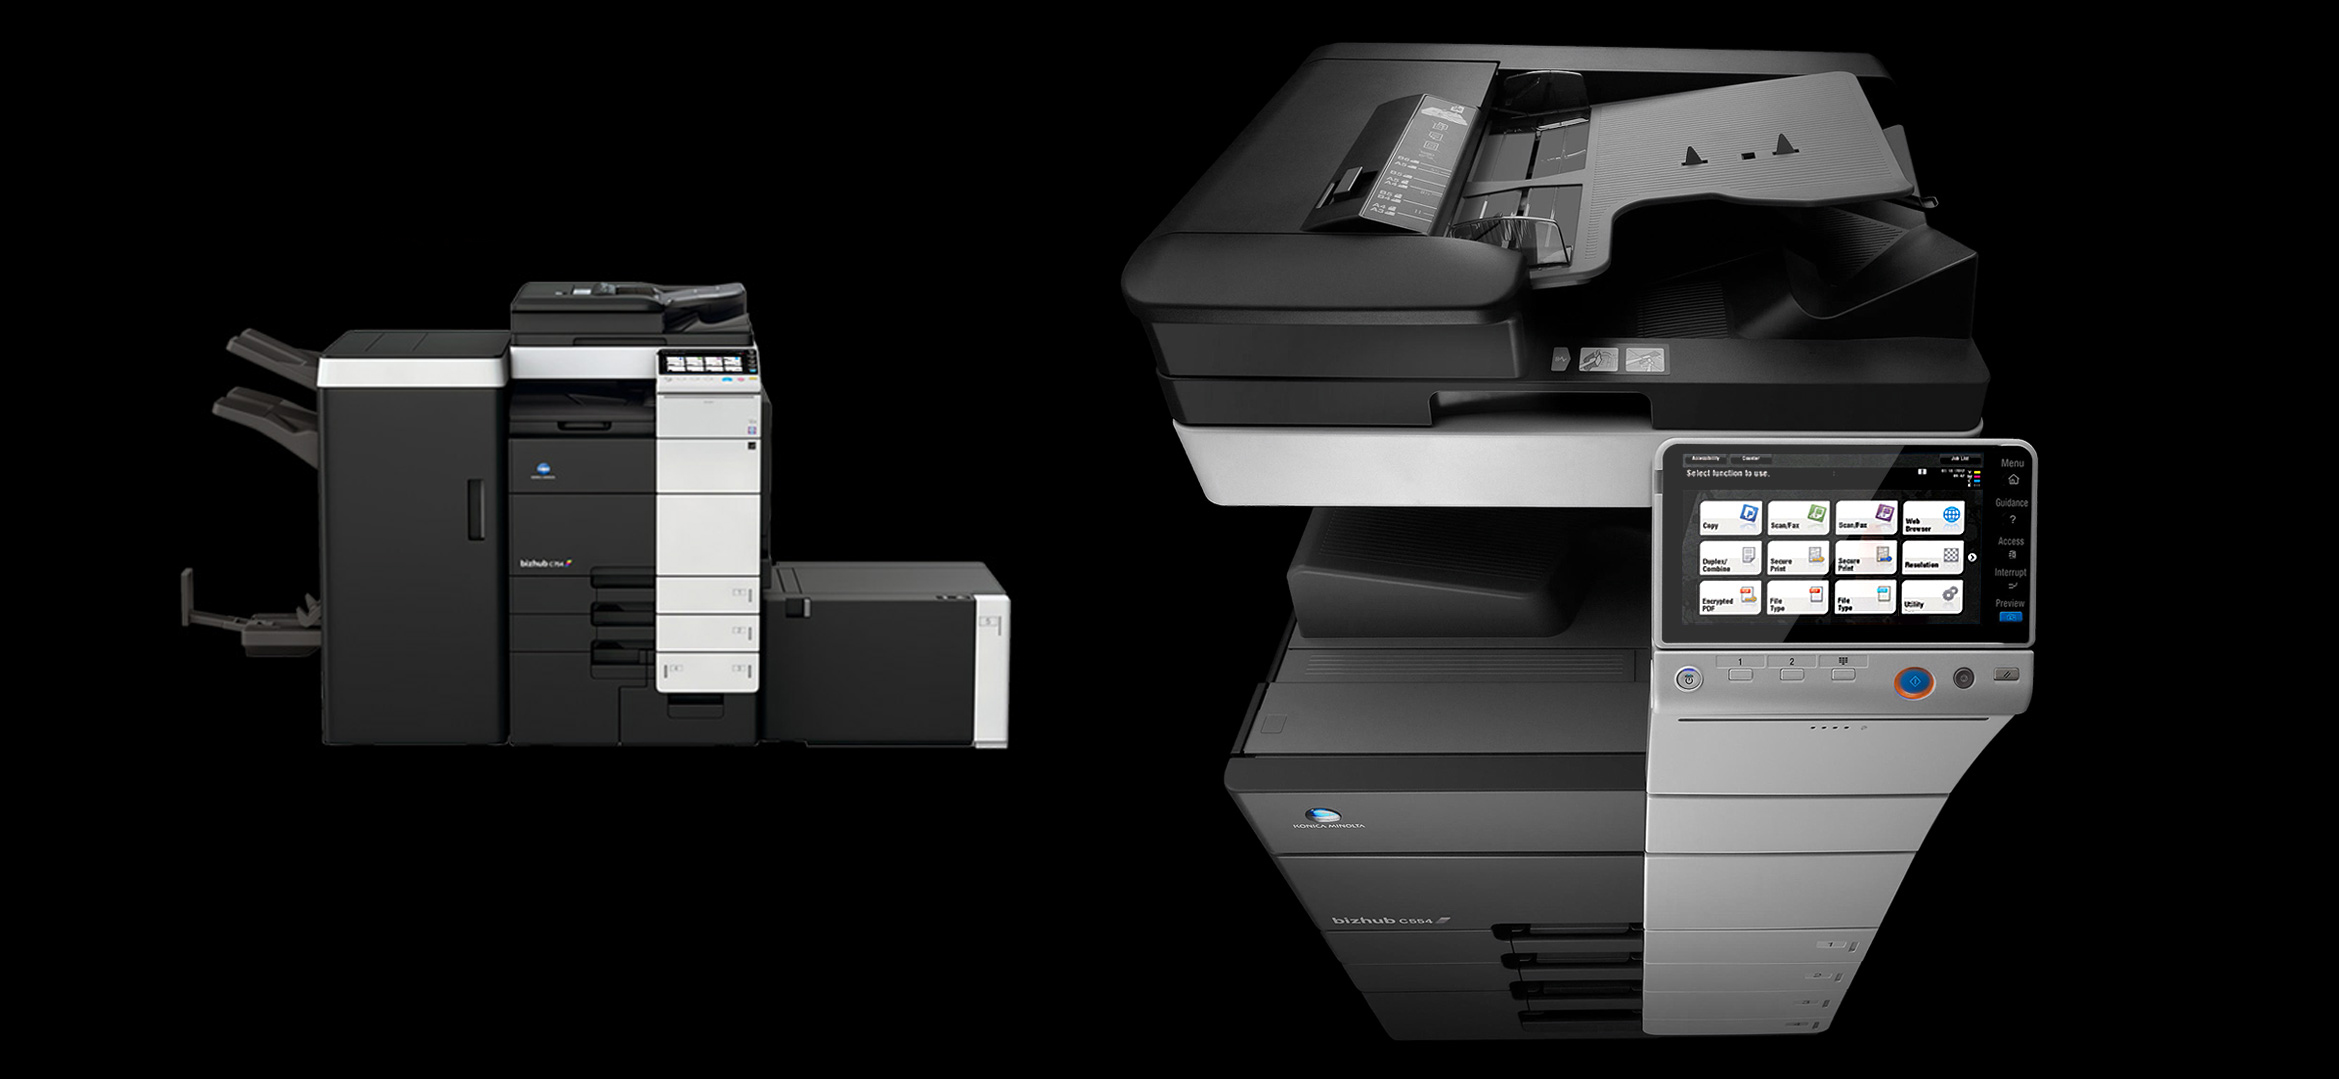 Konica Minolta Photocopiers- Catering To All Your Printing Needs